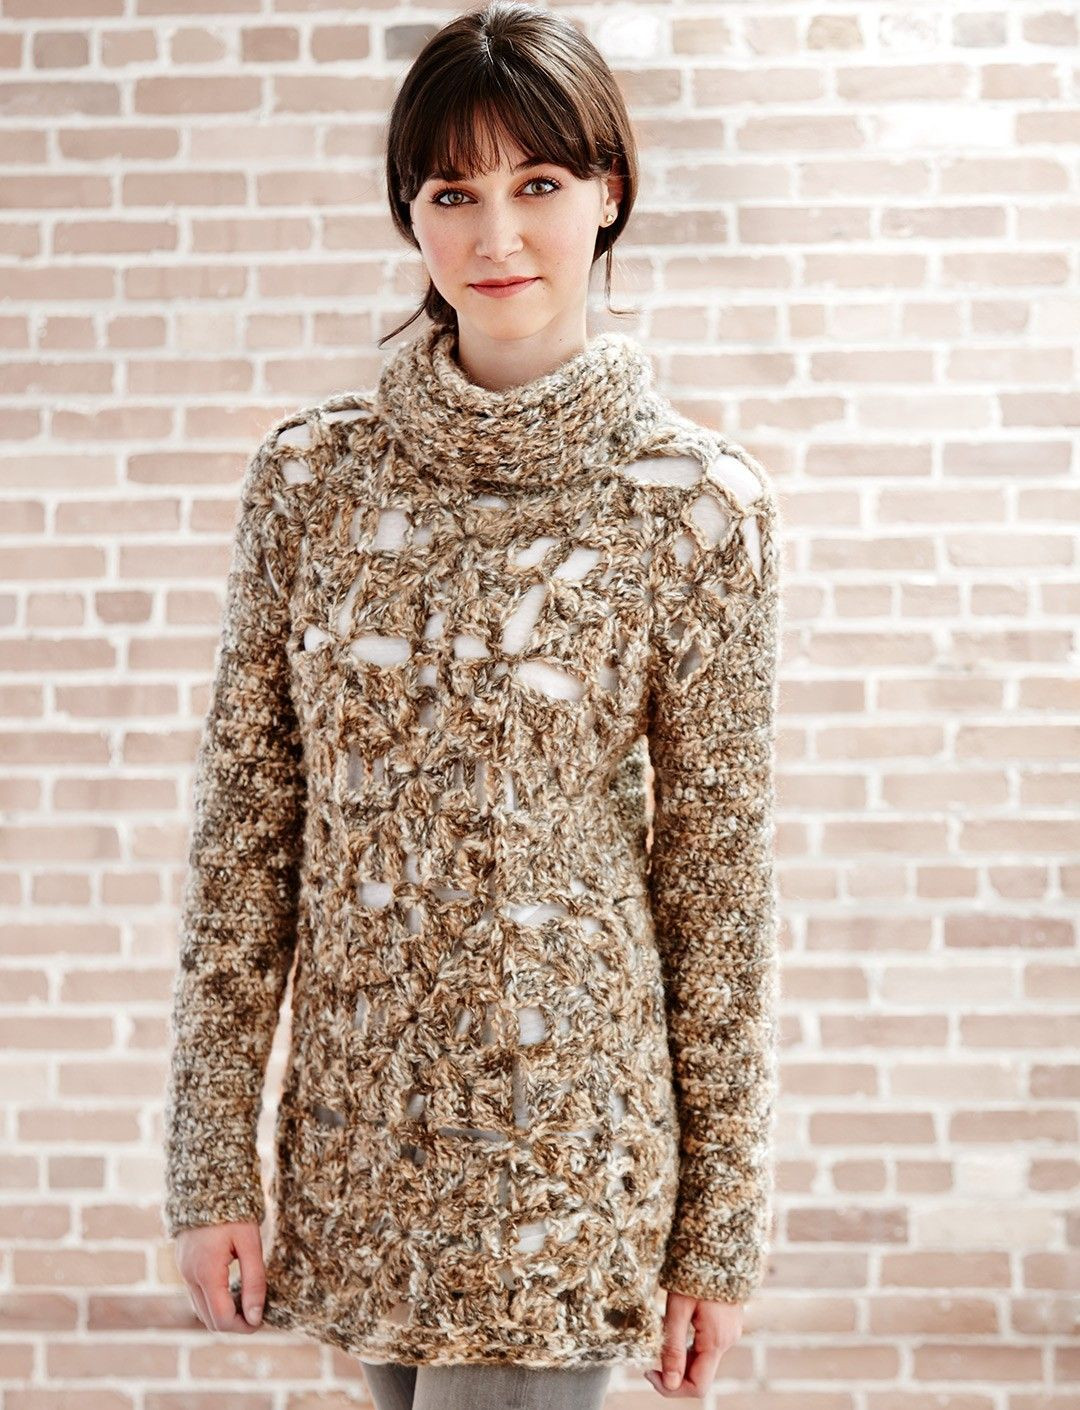 Granny Openwork Pullover: free #crochet #pullover #pattern ...